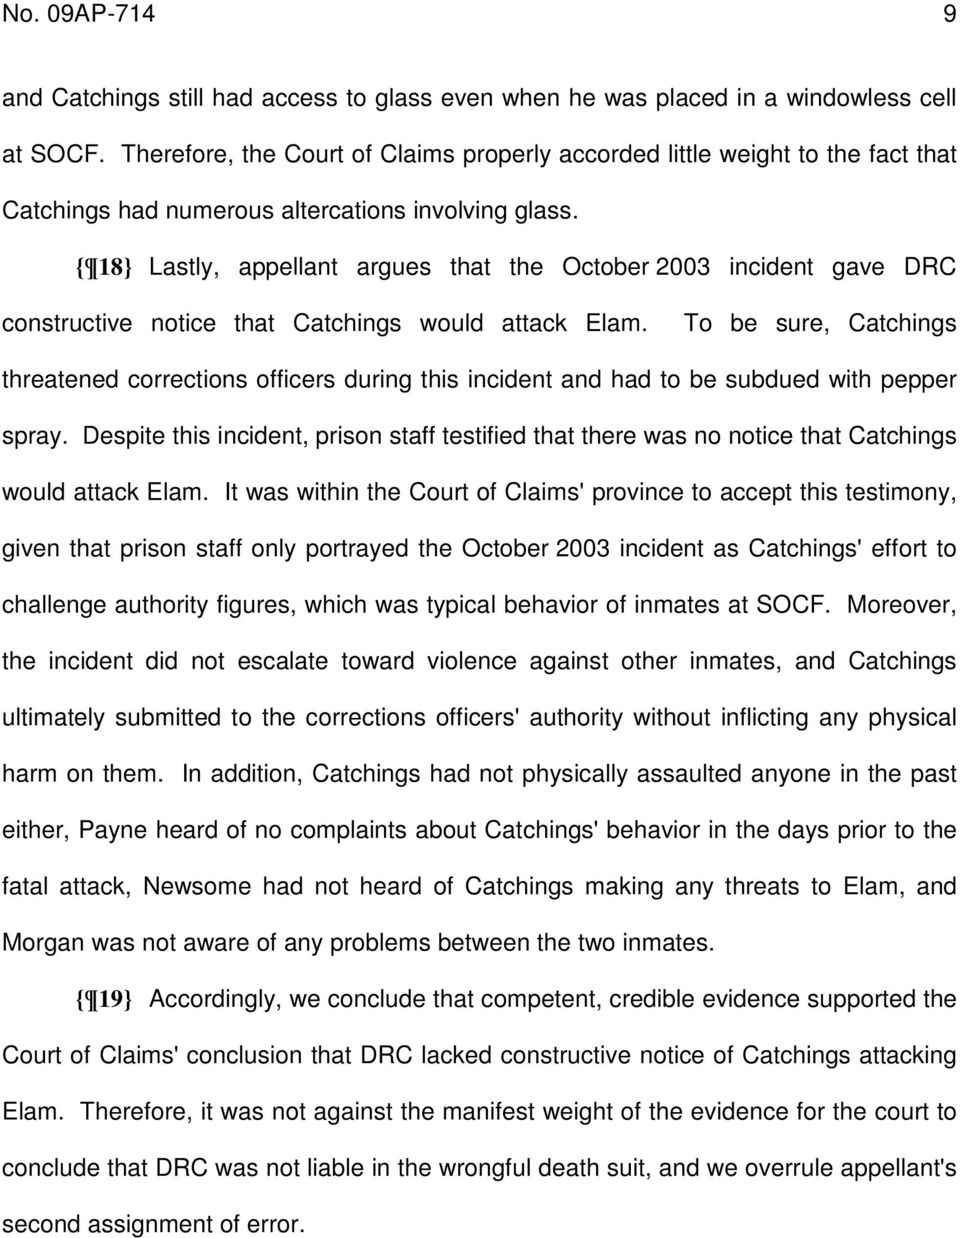 { 18} Lastly, appellant argues that the October 2003 incident gave DRC constructive notice that Catchings would attack Elam.